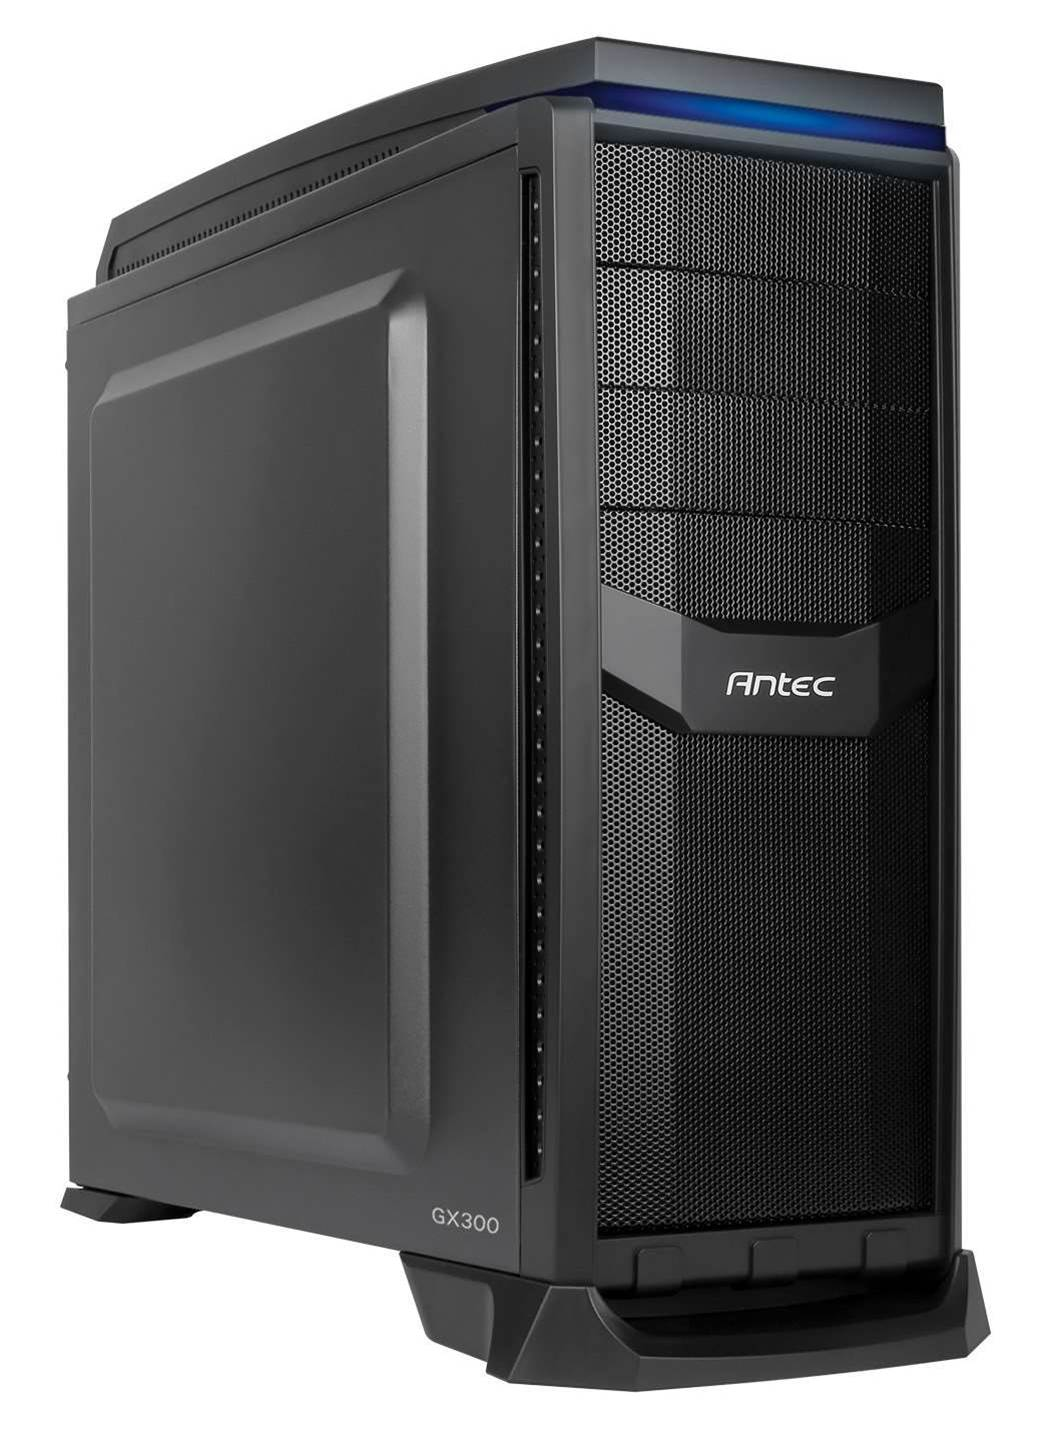 One Minute Review: Antec GX300